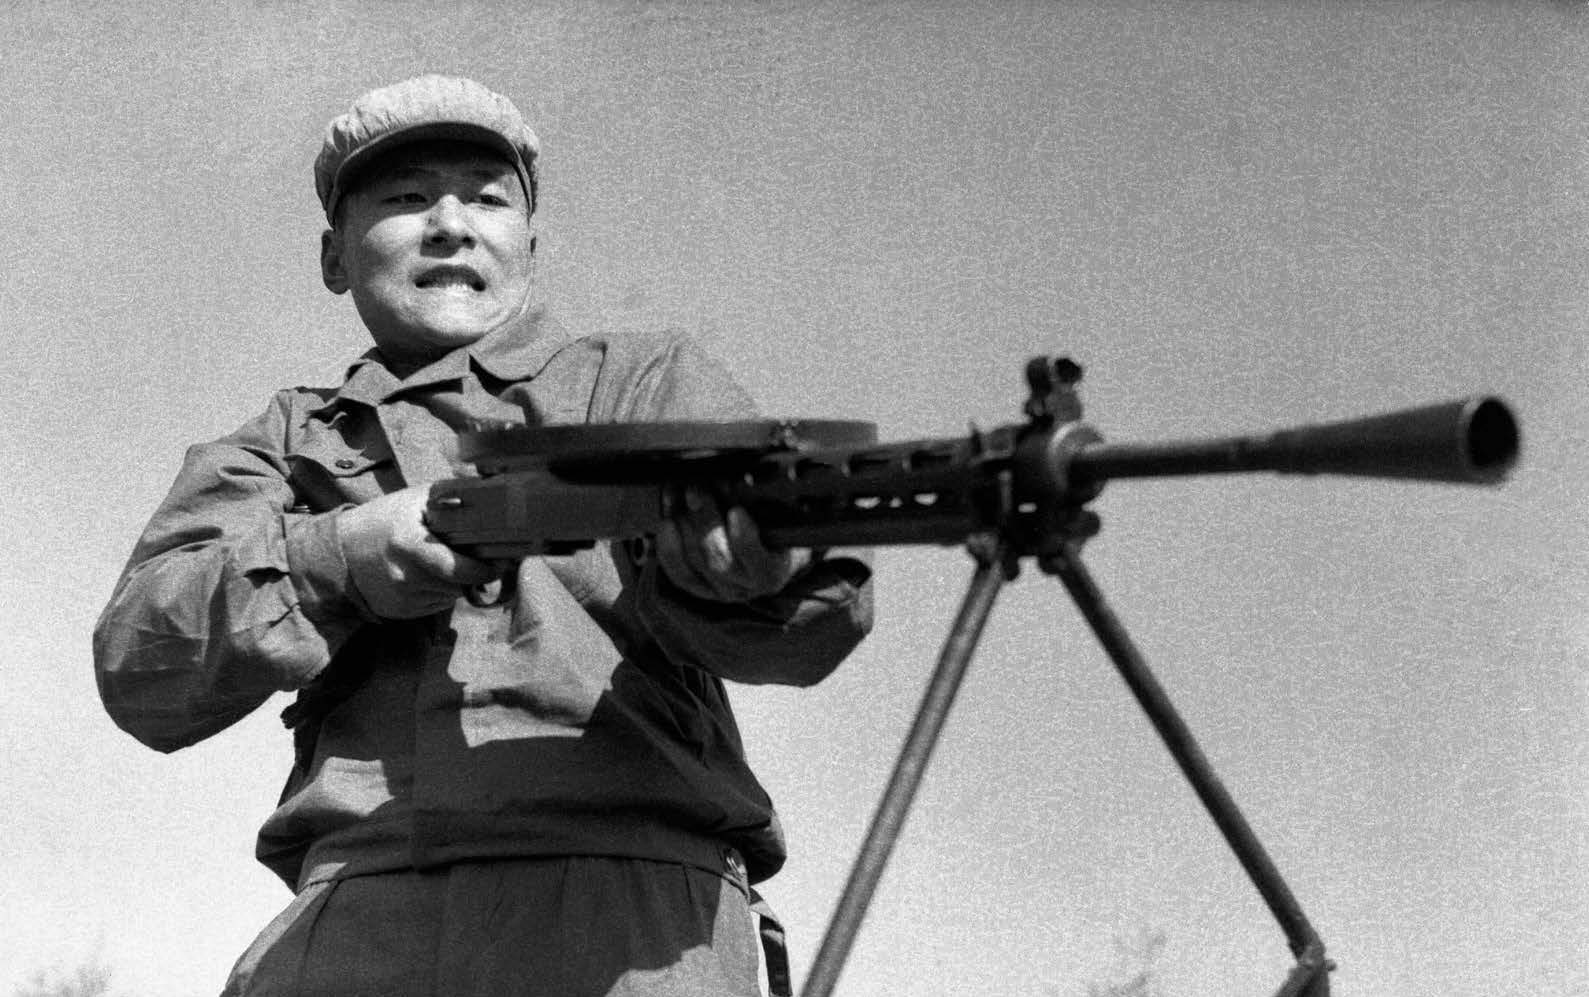 wang-qiuhang-cultural-revolution-selfies-1966-1976-photography-of-china-7.jpg